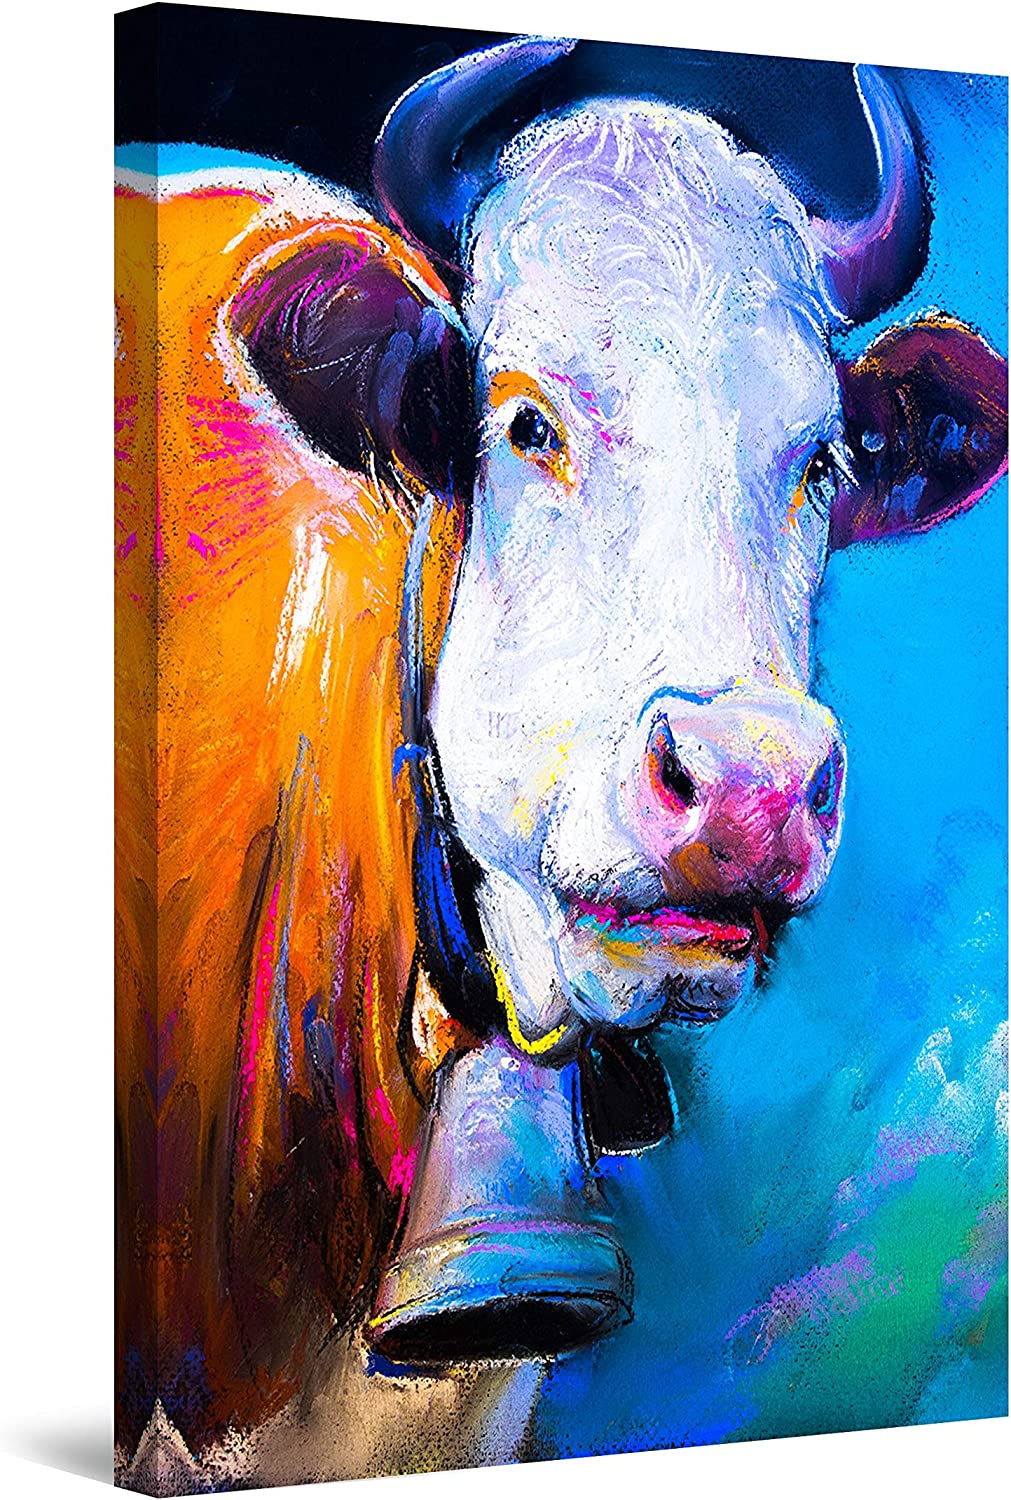 Startonight 超特価 お金を節約 Canvas Wall Art Abstract - Bac with Cow Bell Blue a